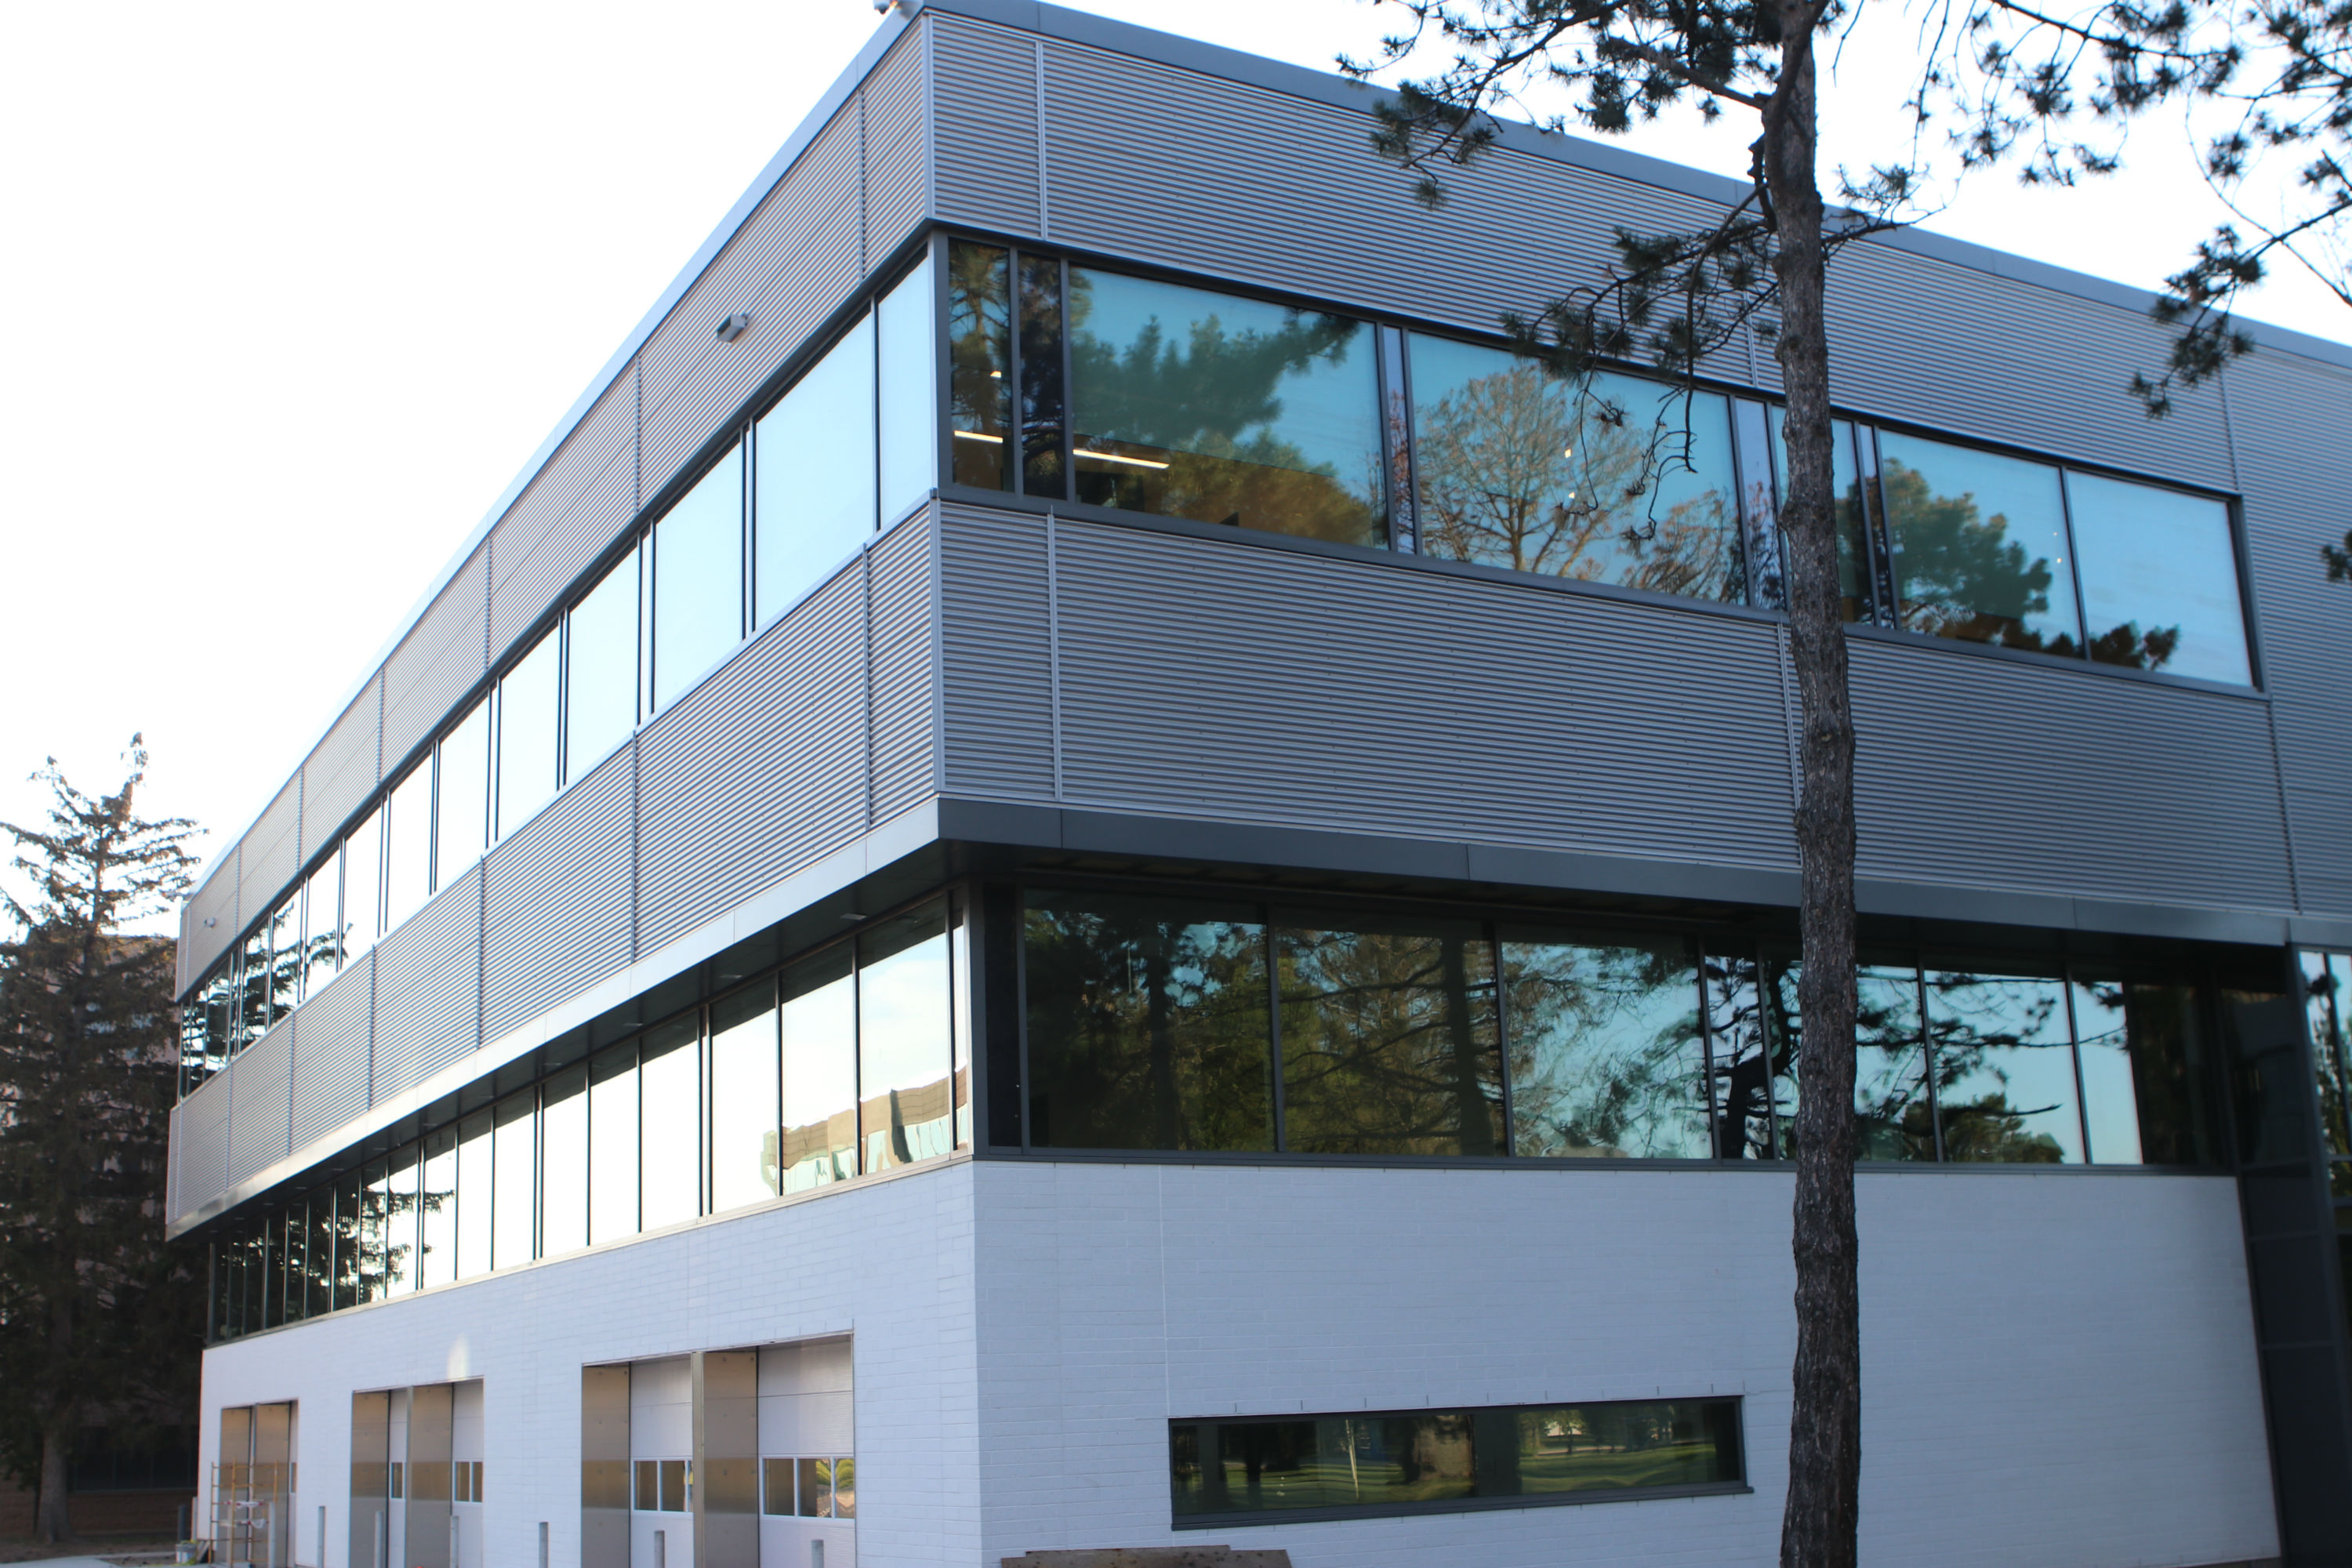 It's almost Hatch'd The new building offers benefits for multiple faculties, and is close to completion